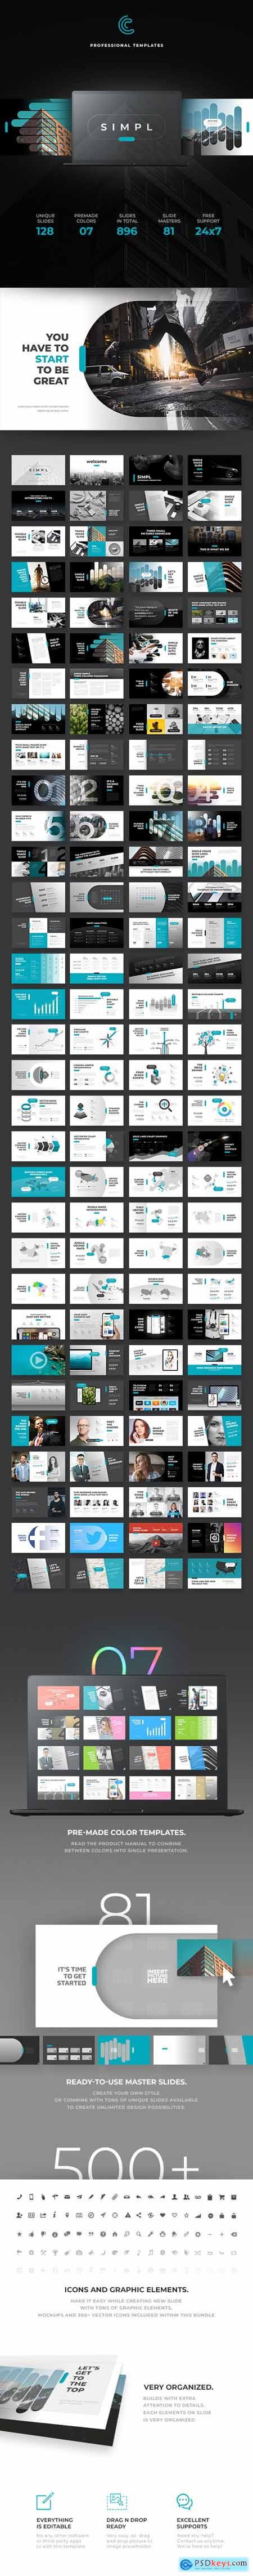 Simpl PowerPoint 24549426